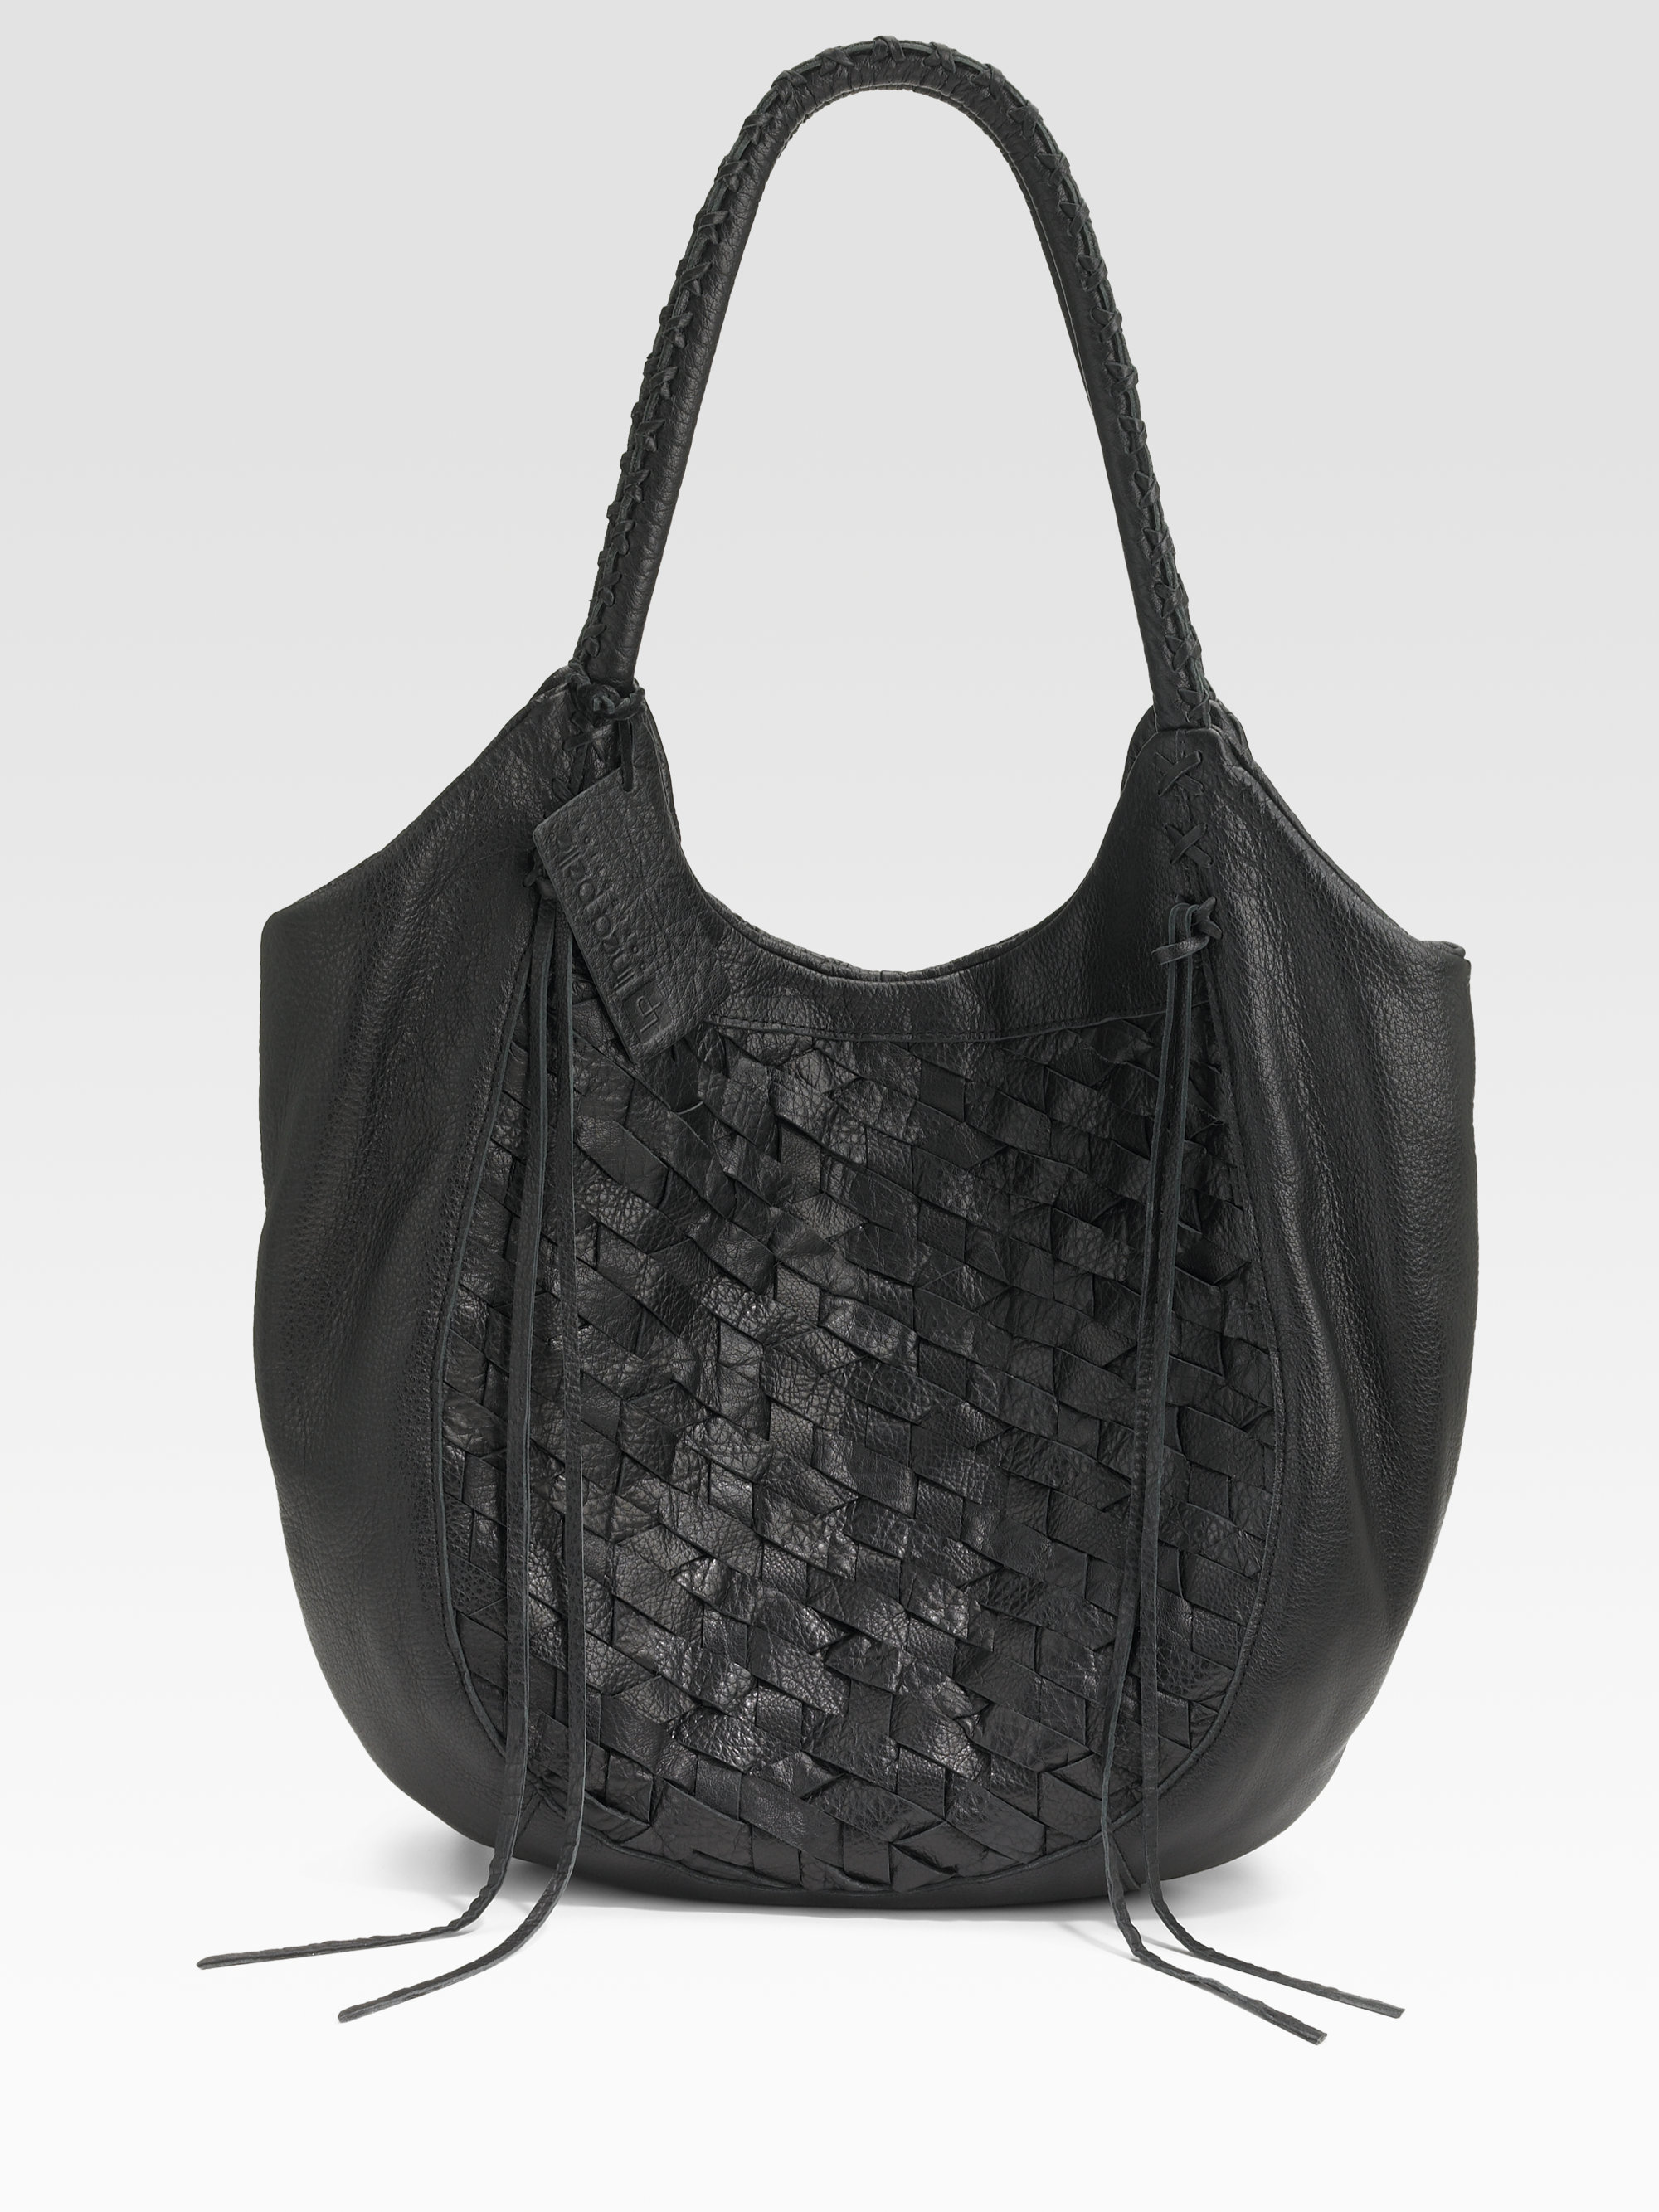 Lyst Linea Pelle Woven Leather Tote Bag In Black